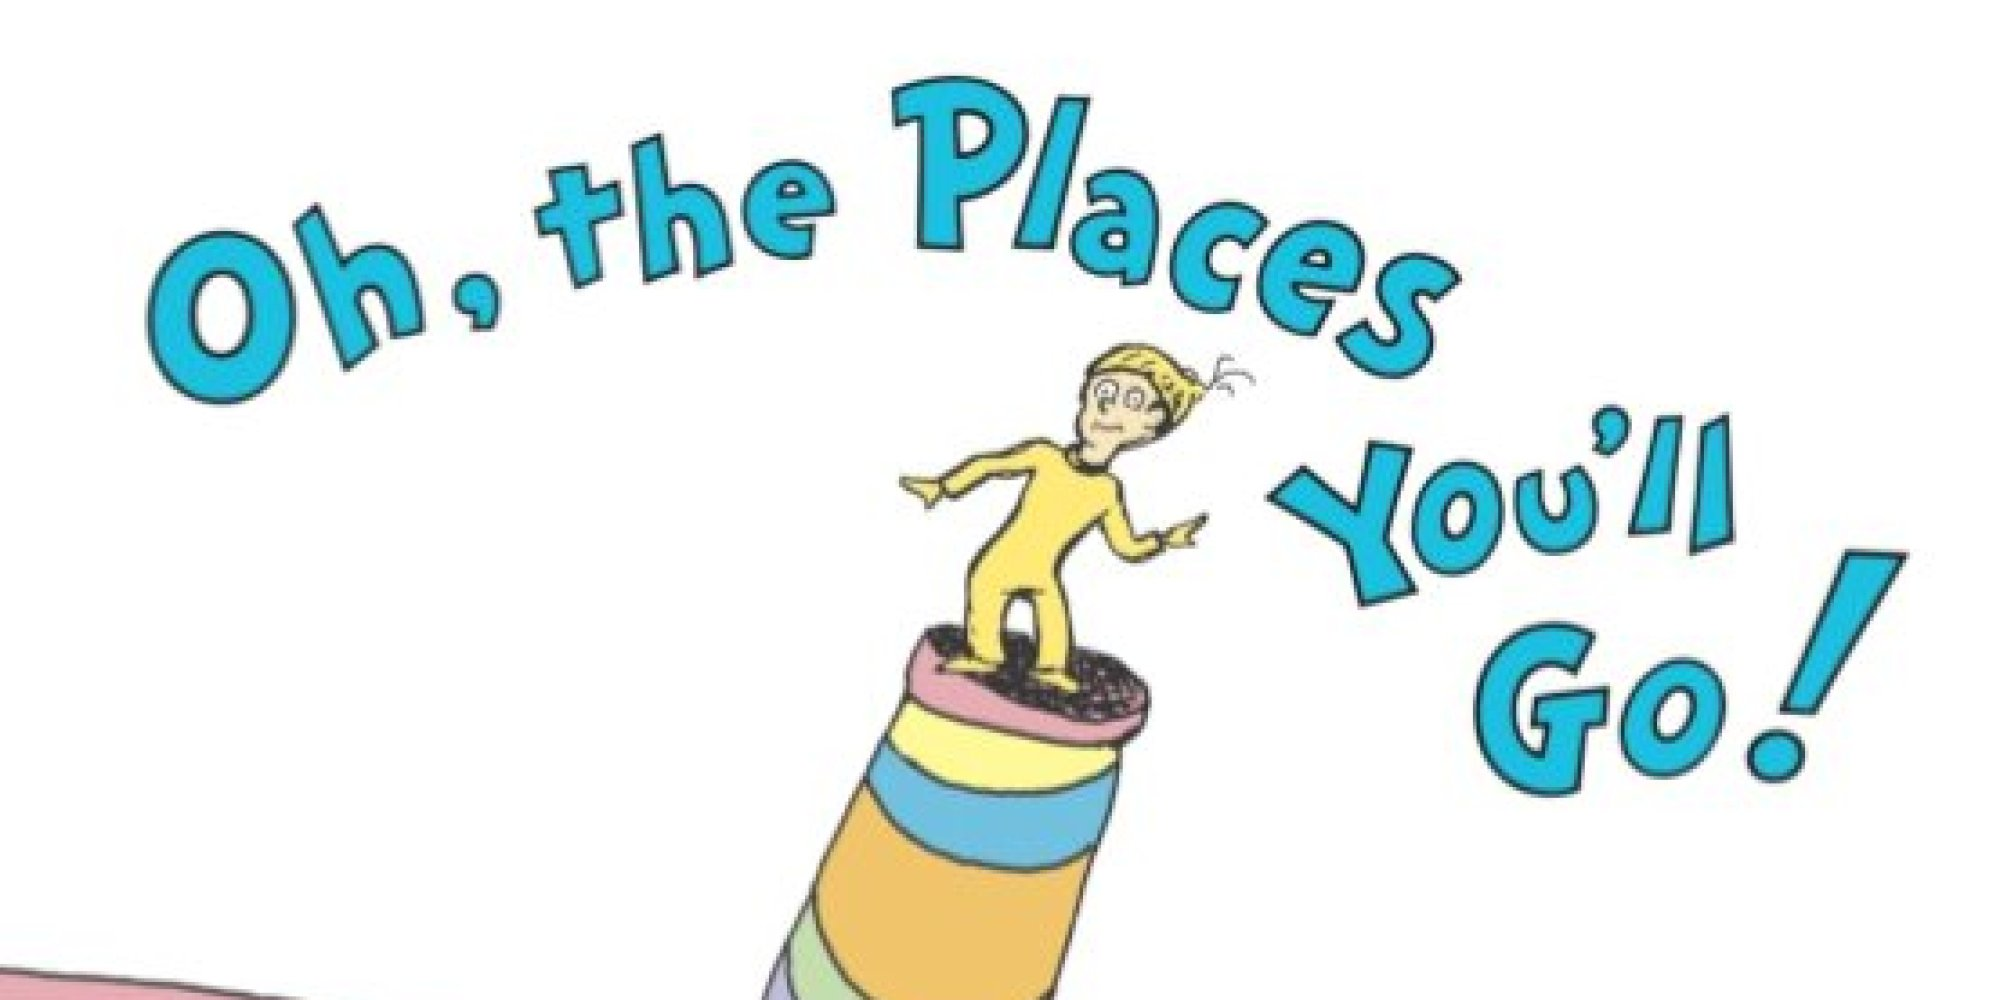 oh the places youll go colouring page 2